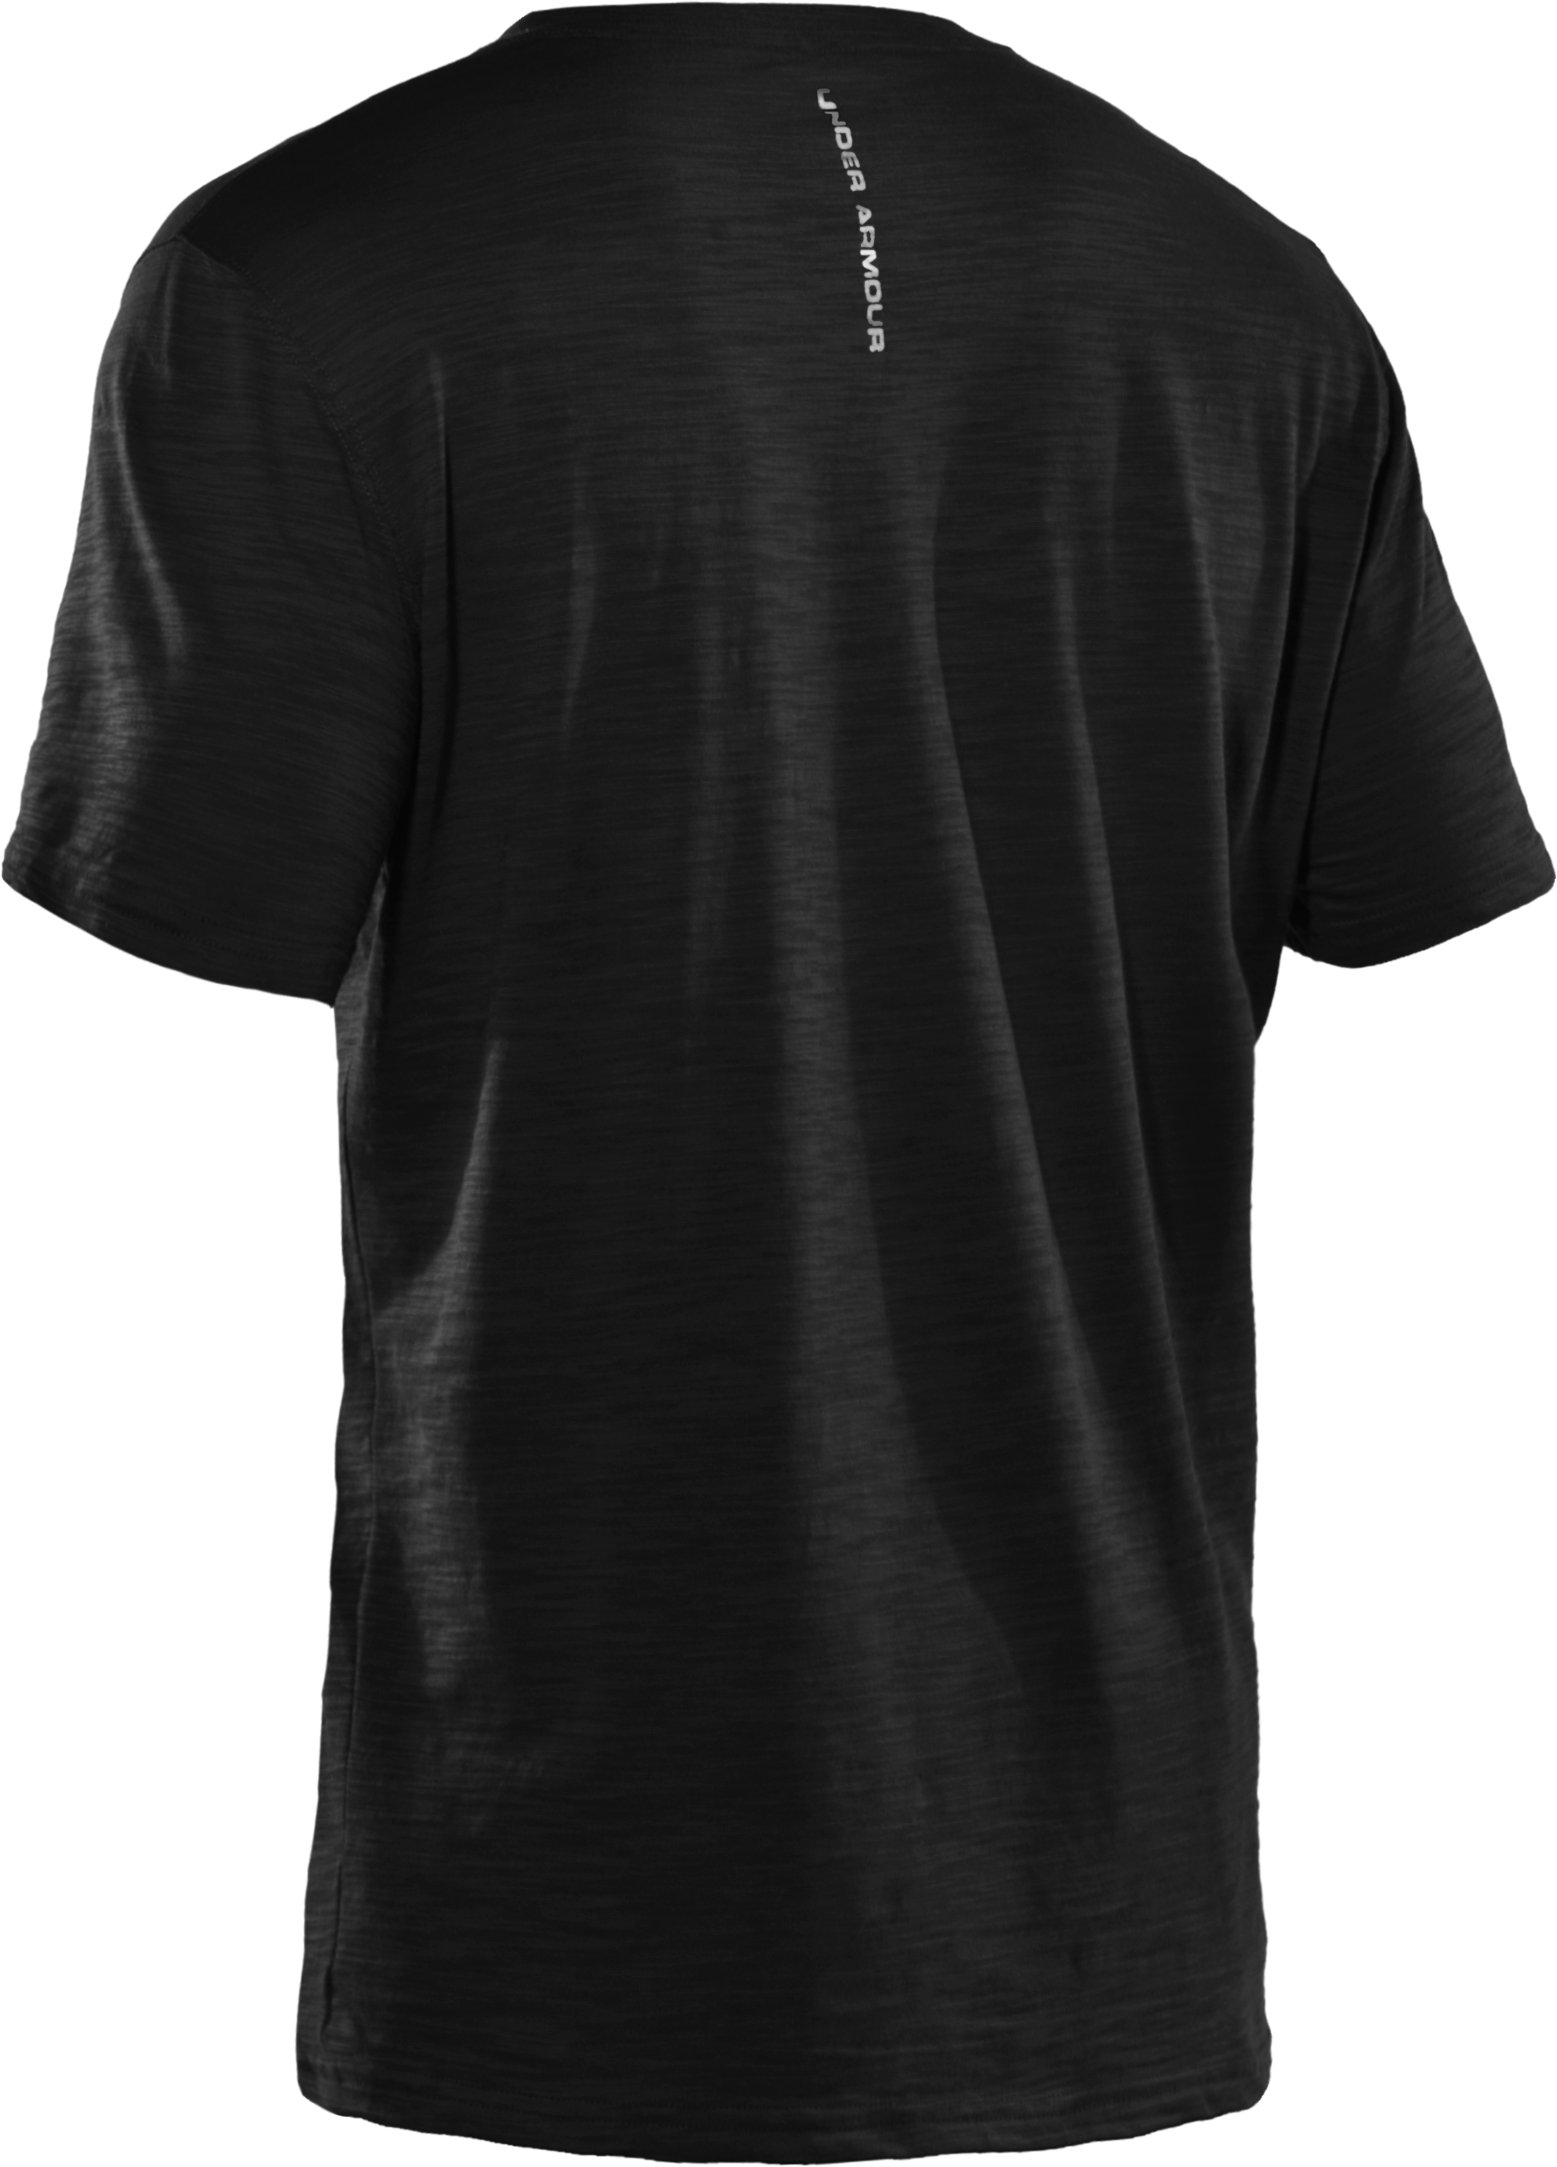 Men's Charged Cotton® Slub V-Neck T-Shirt, Black